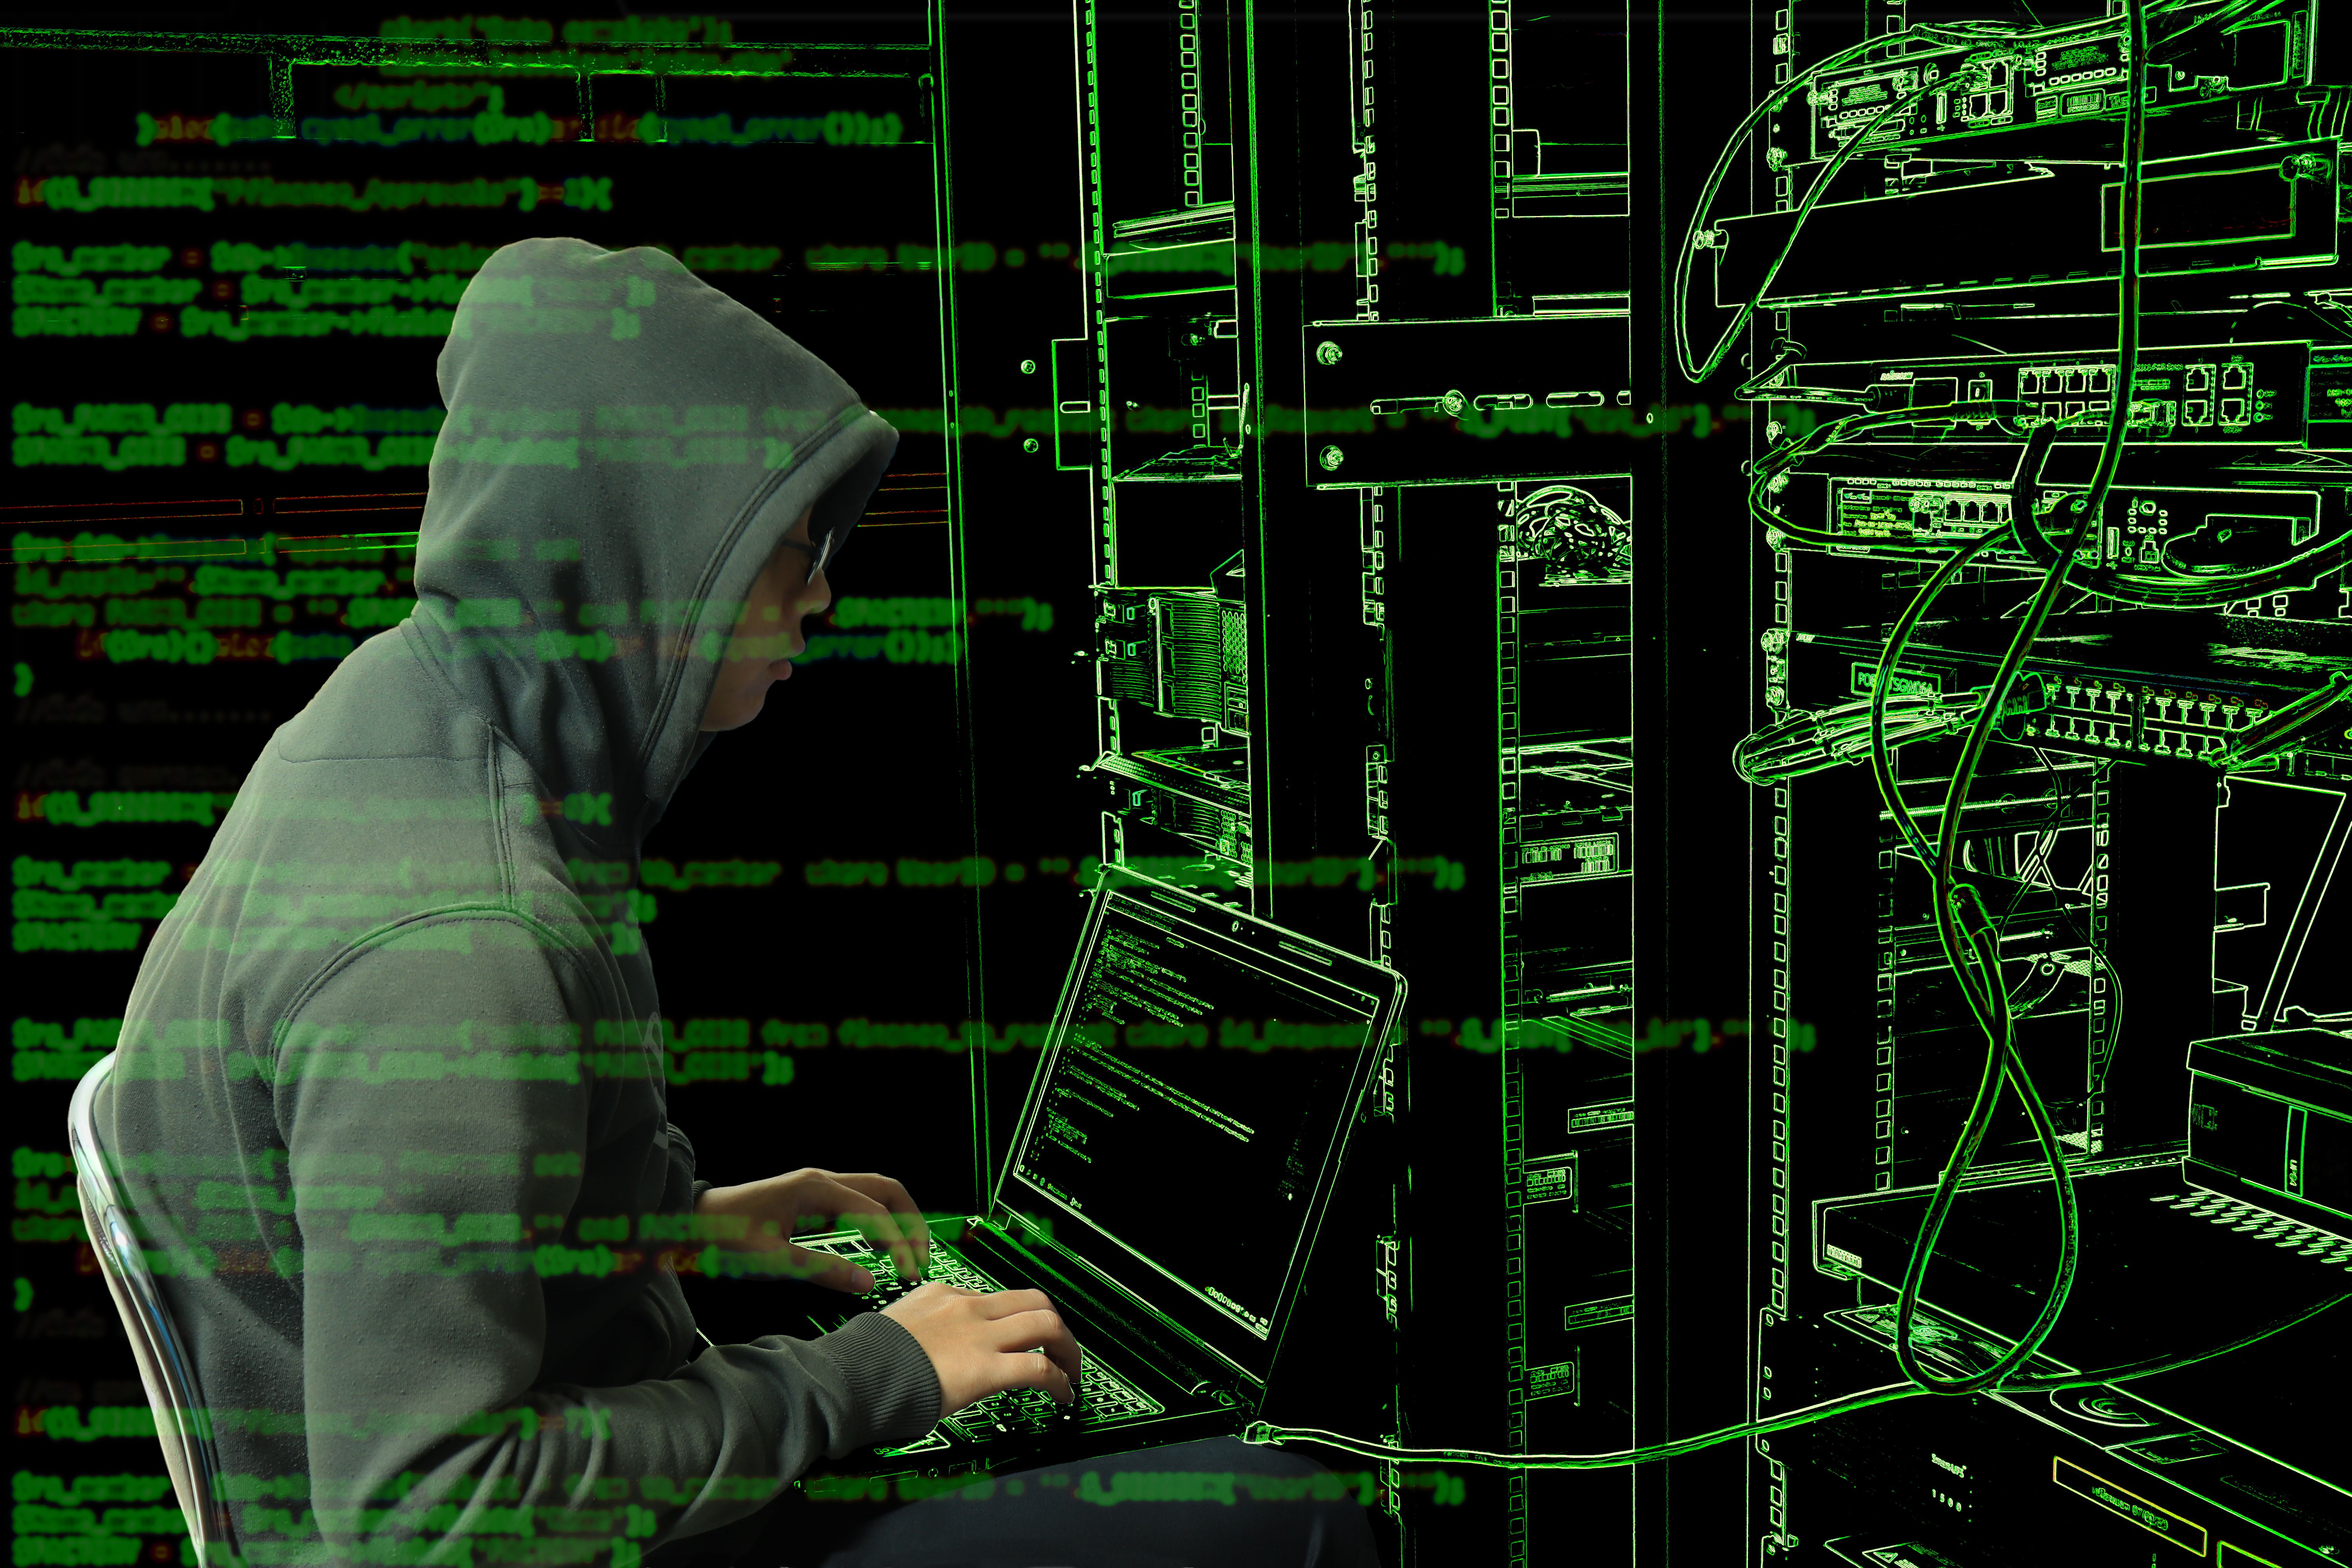 /ethical-hacking-101-part-2-j8x332c feature image